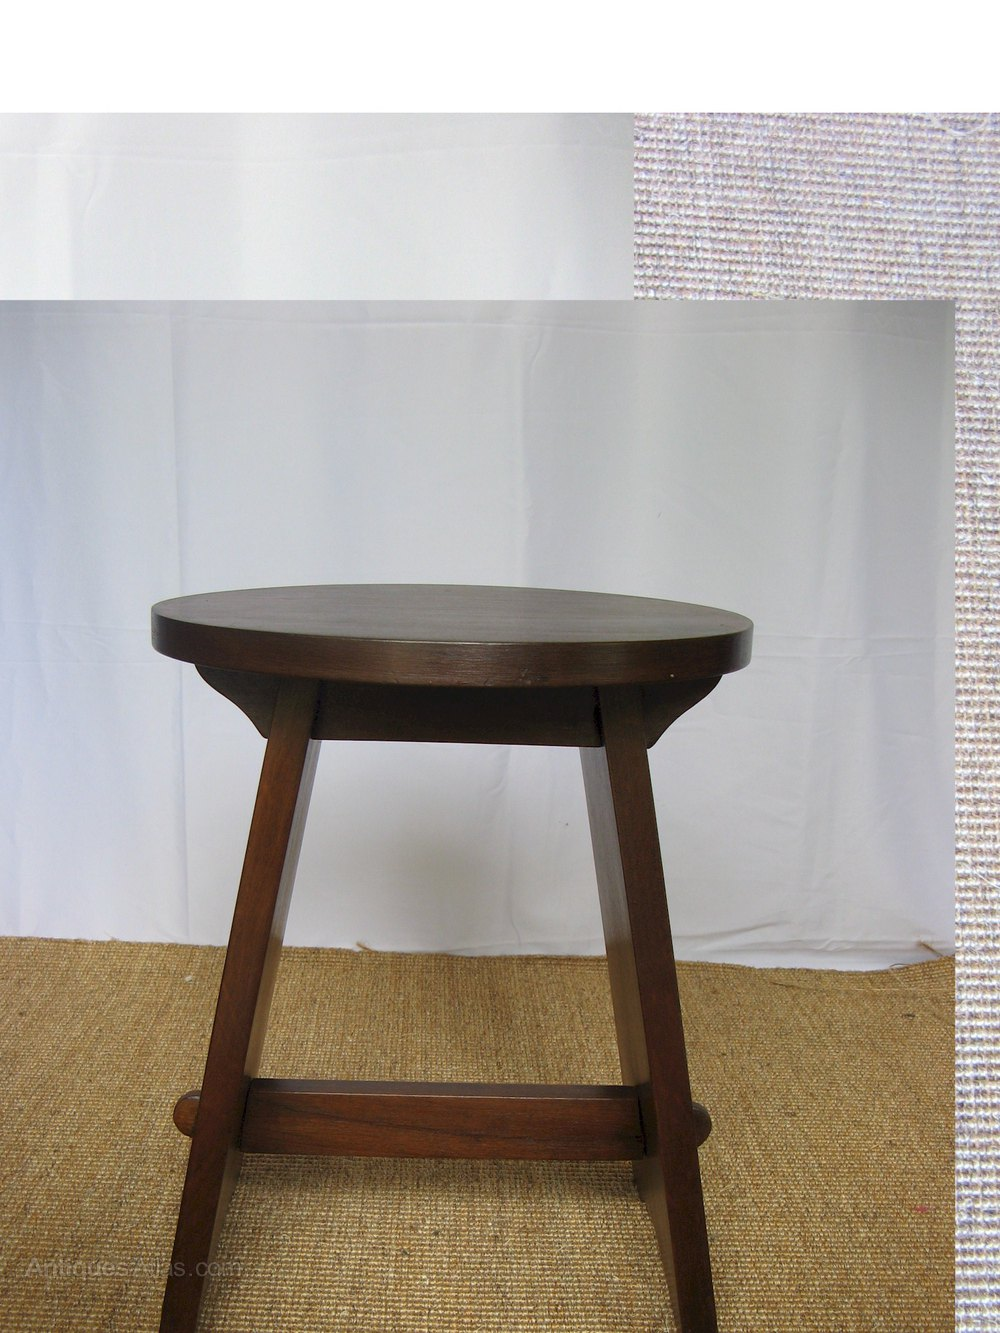 small arts and crafts table antiques atlas. Black Bedroom Furniture Sets. Home Design Ideas